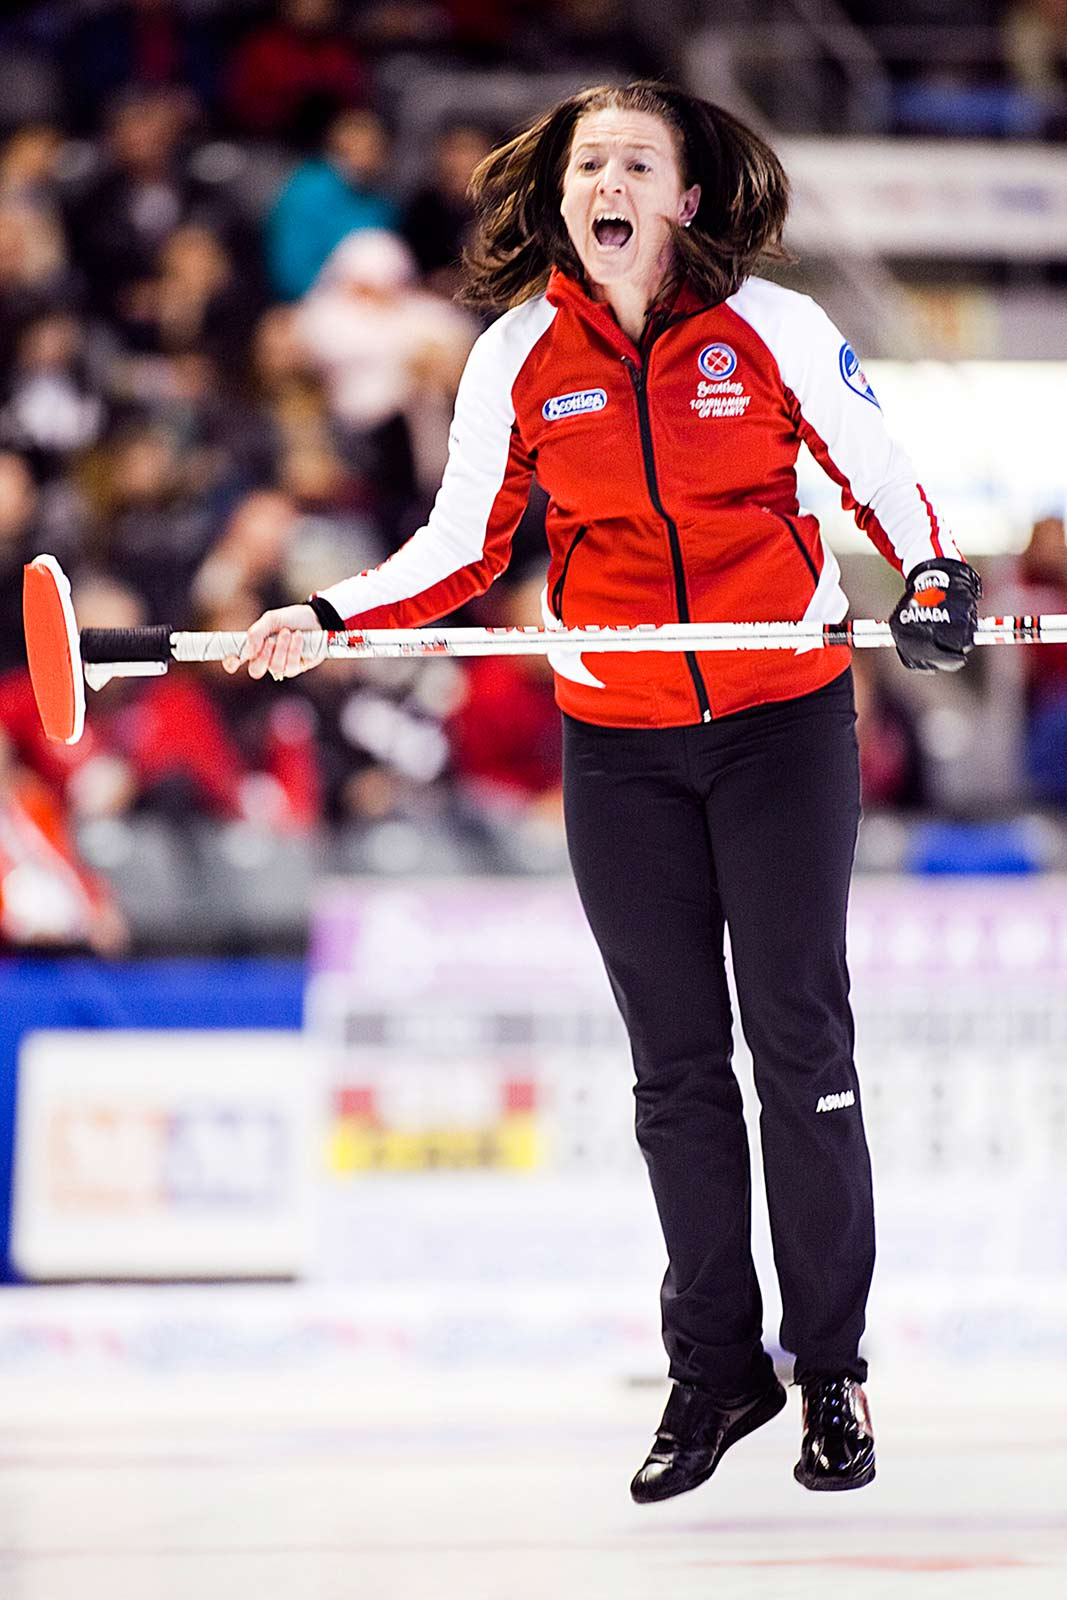 Heather Nedohin yells mid jump